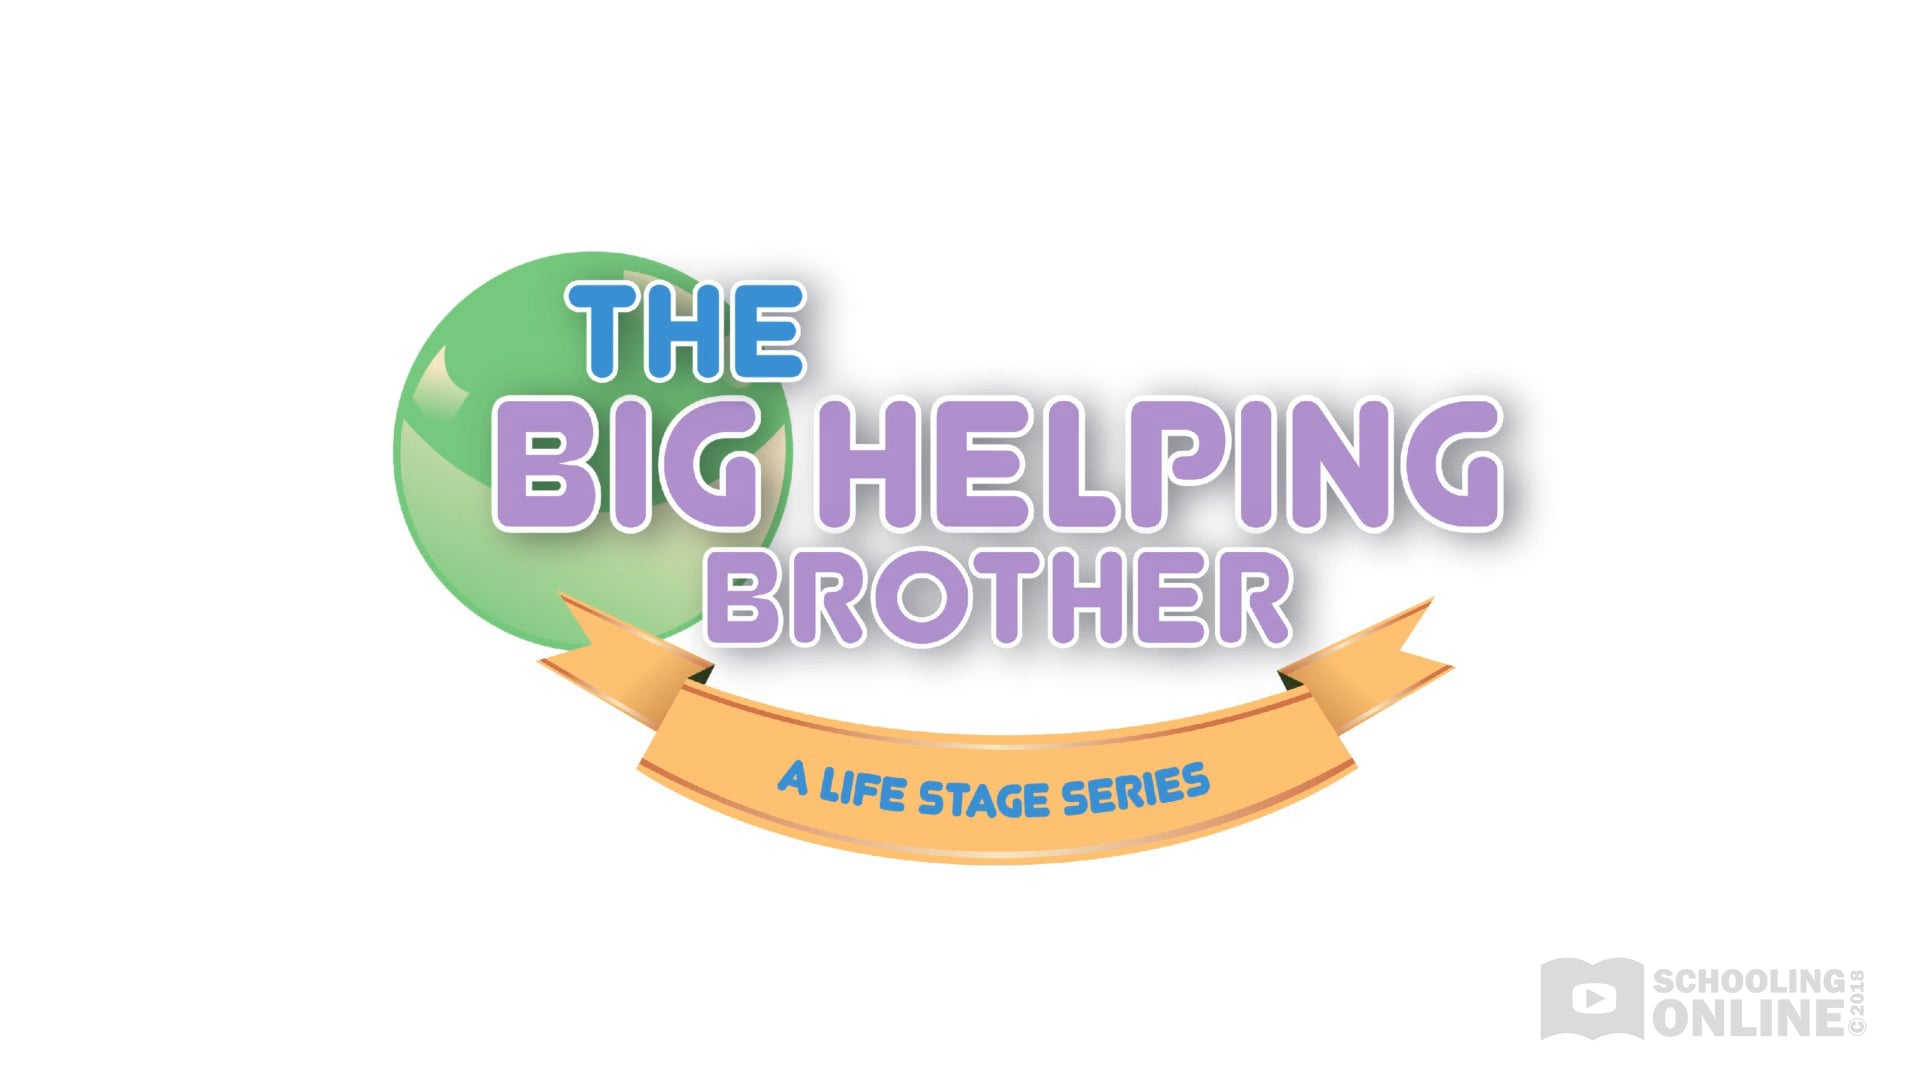 The Big Helping Brother - The Life Stage Series